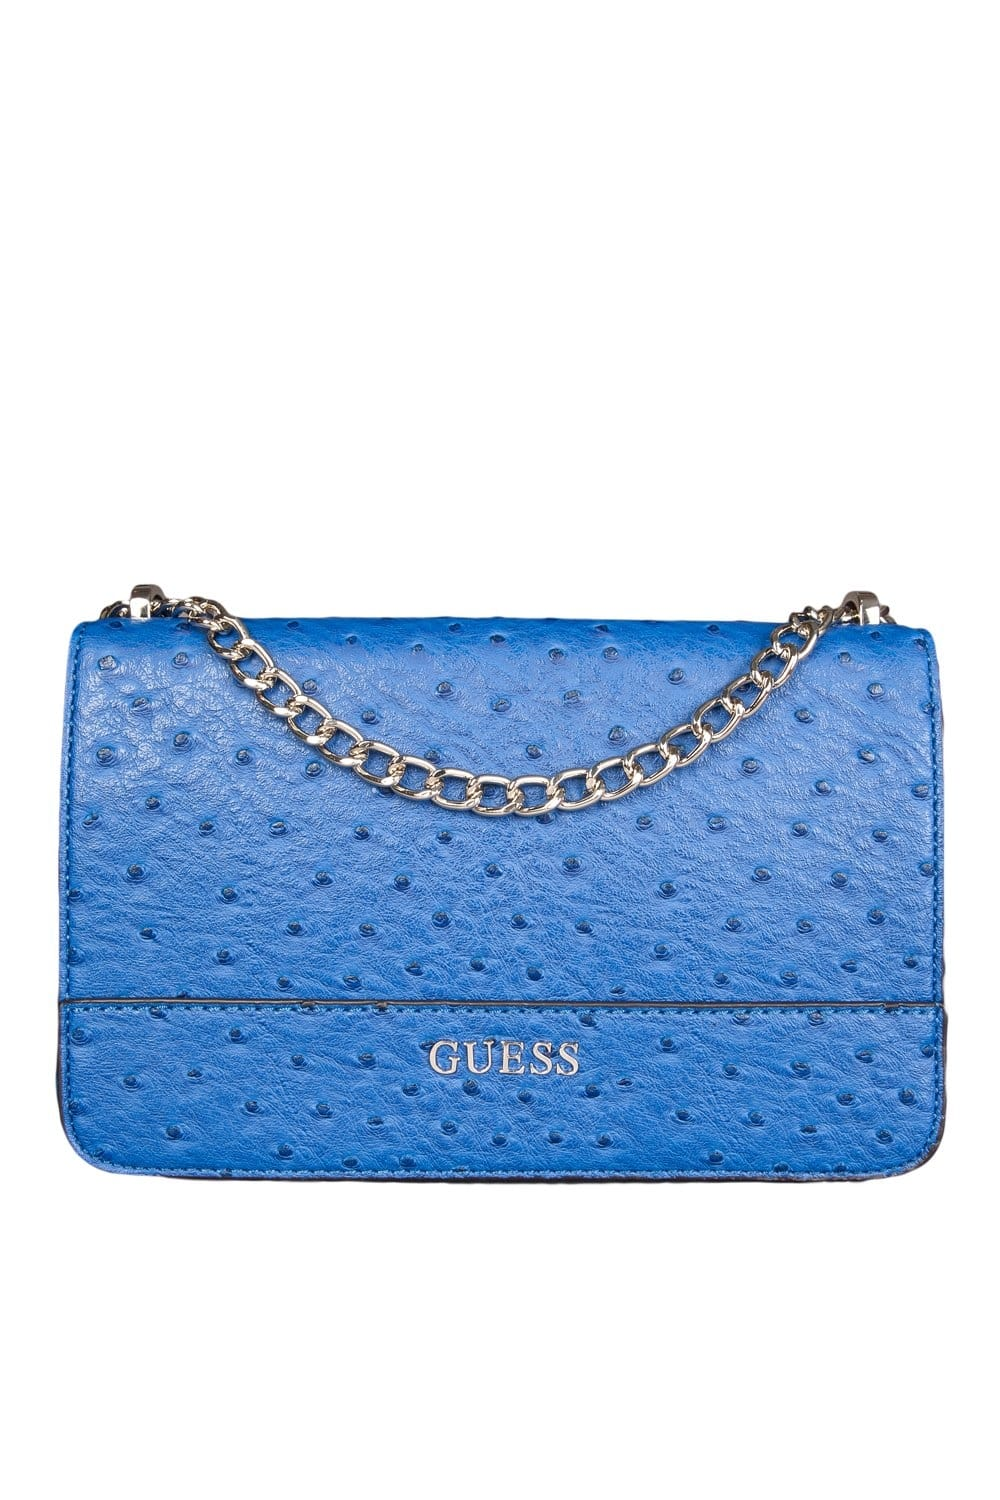 da603a7bb1999 Guess Ostrich Look Cross Body Bag in Royal Blue HWOH5042210 - Ladies  Accessories from Sage Clothing UK